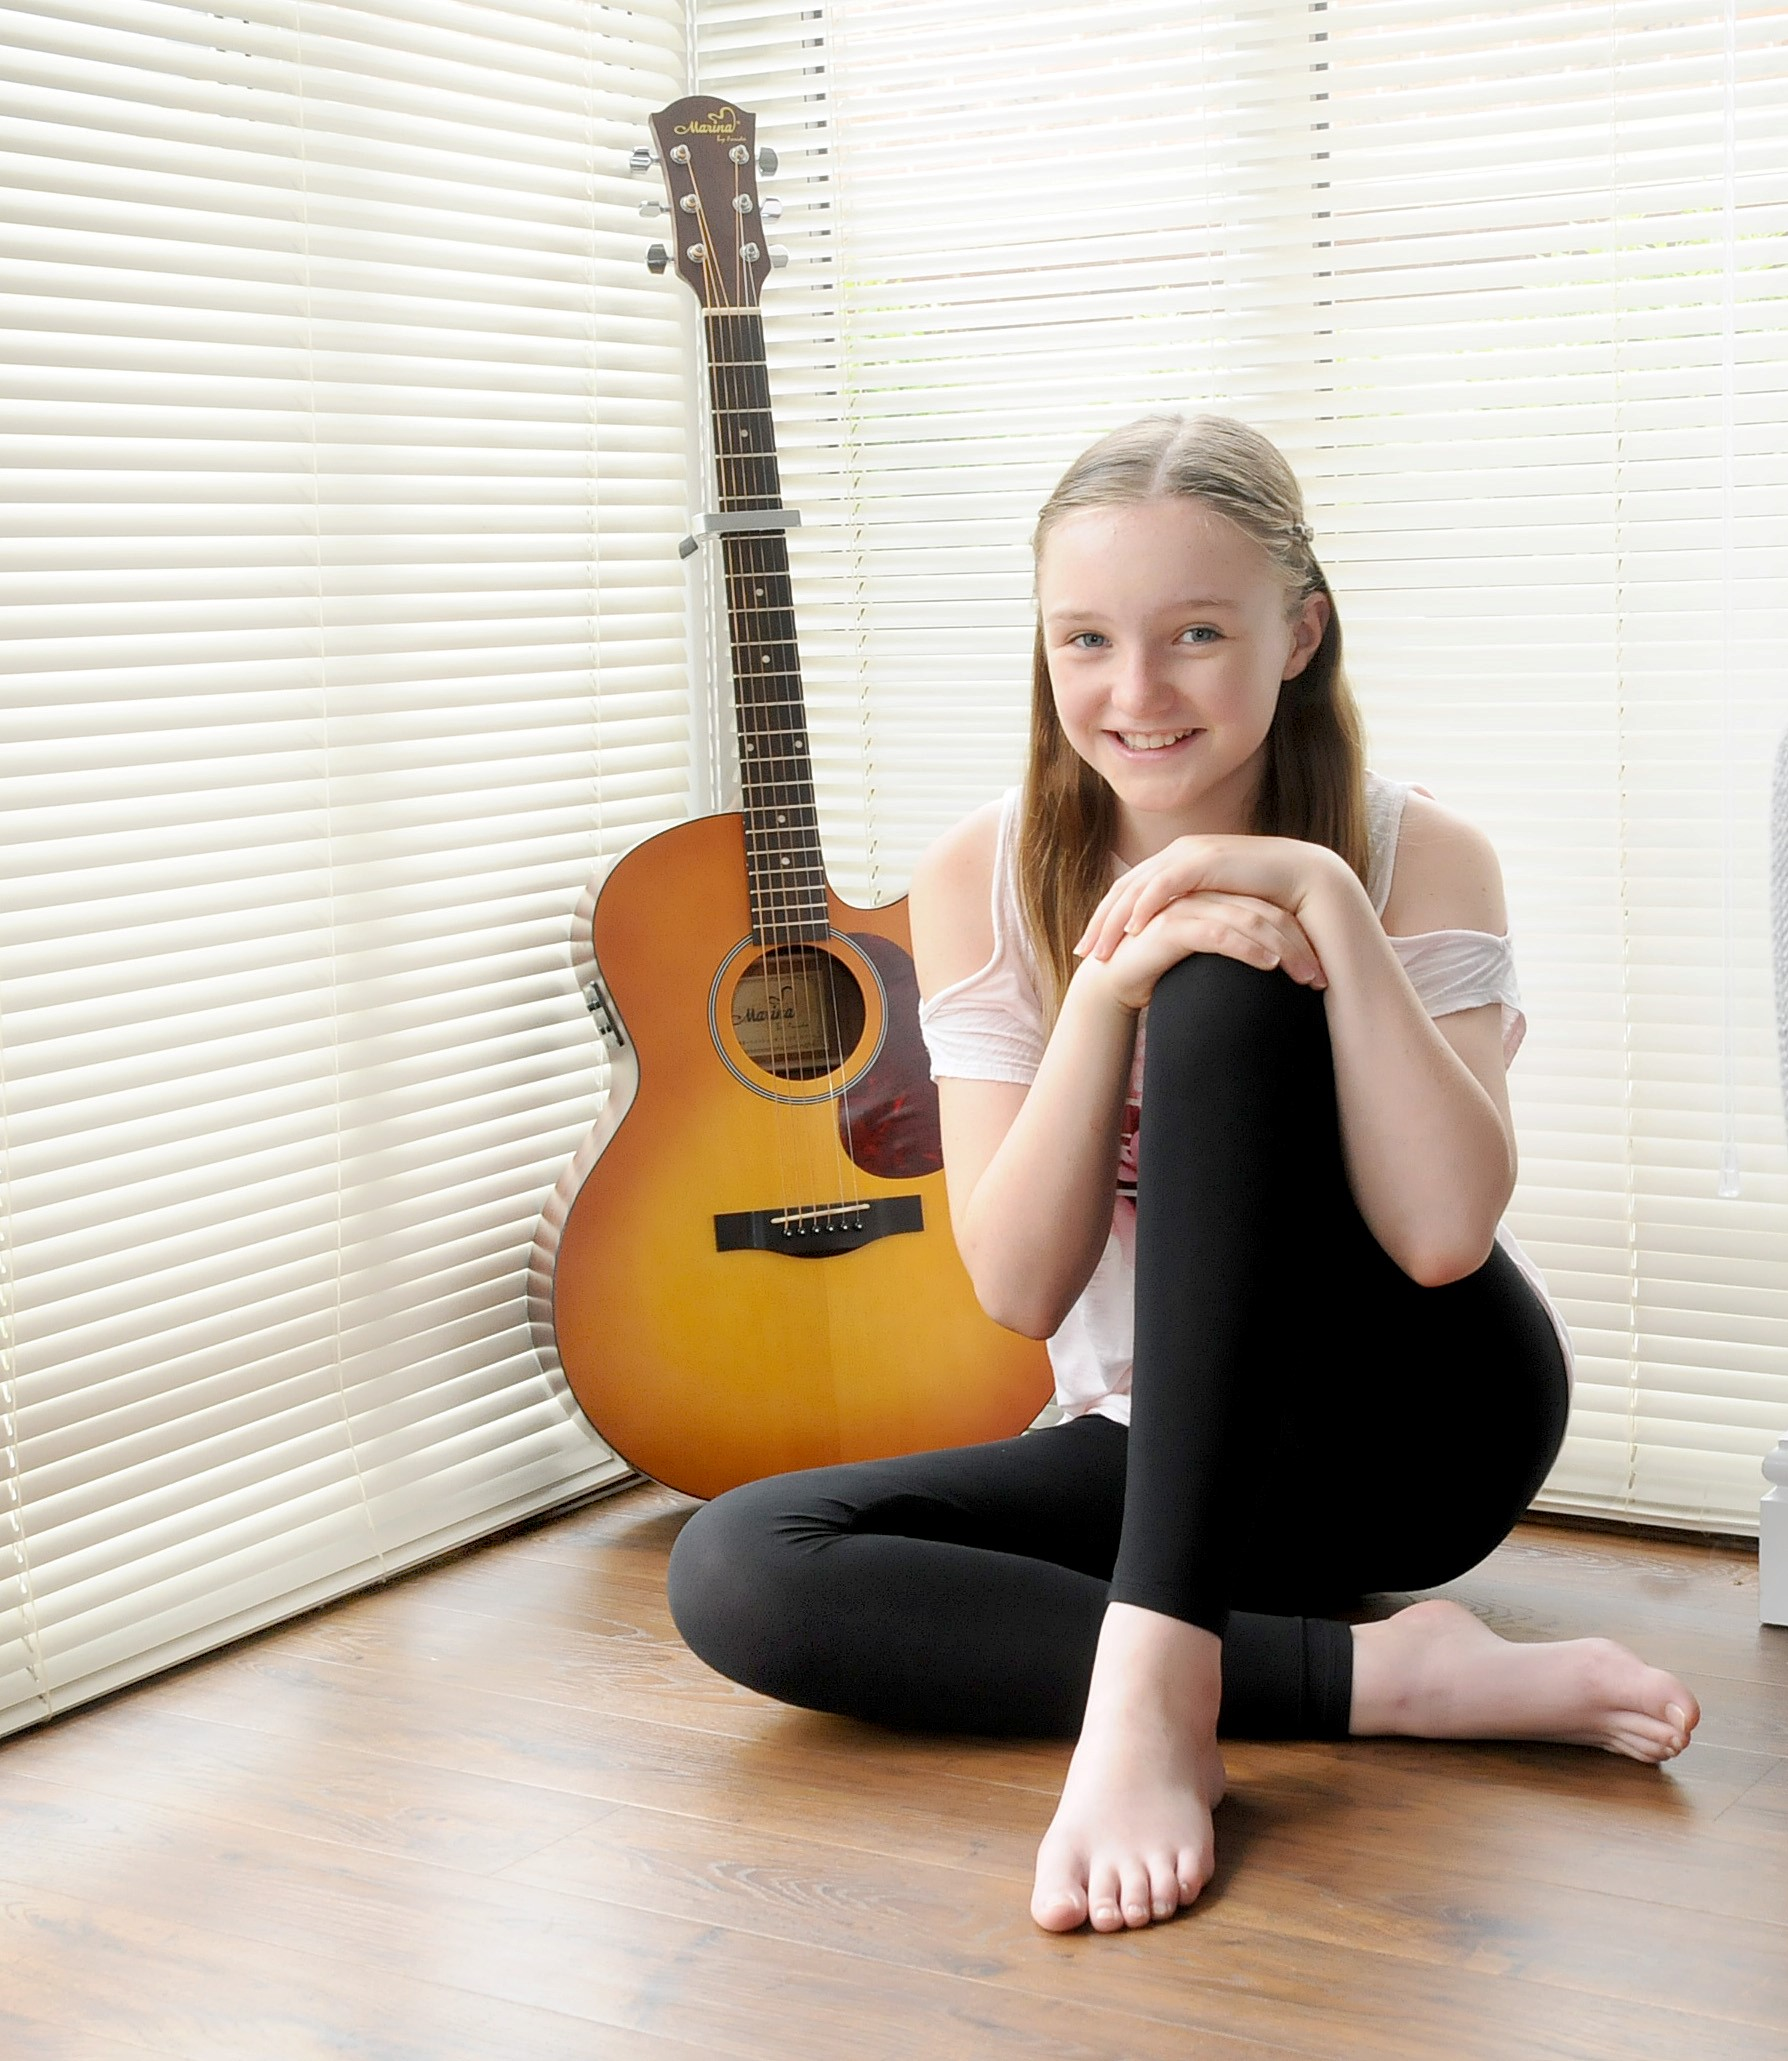 Erin Jordan was a runner up in the national songwriter of the year competition.